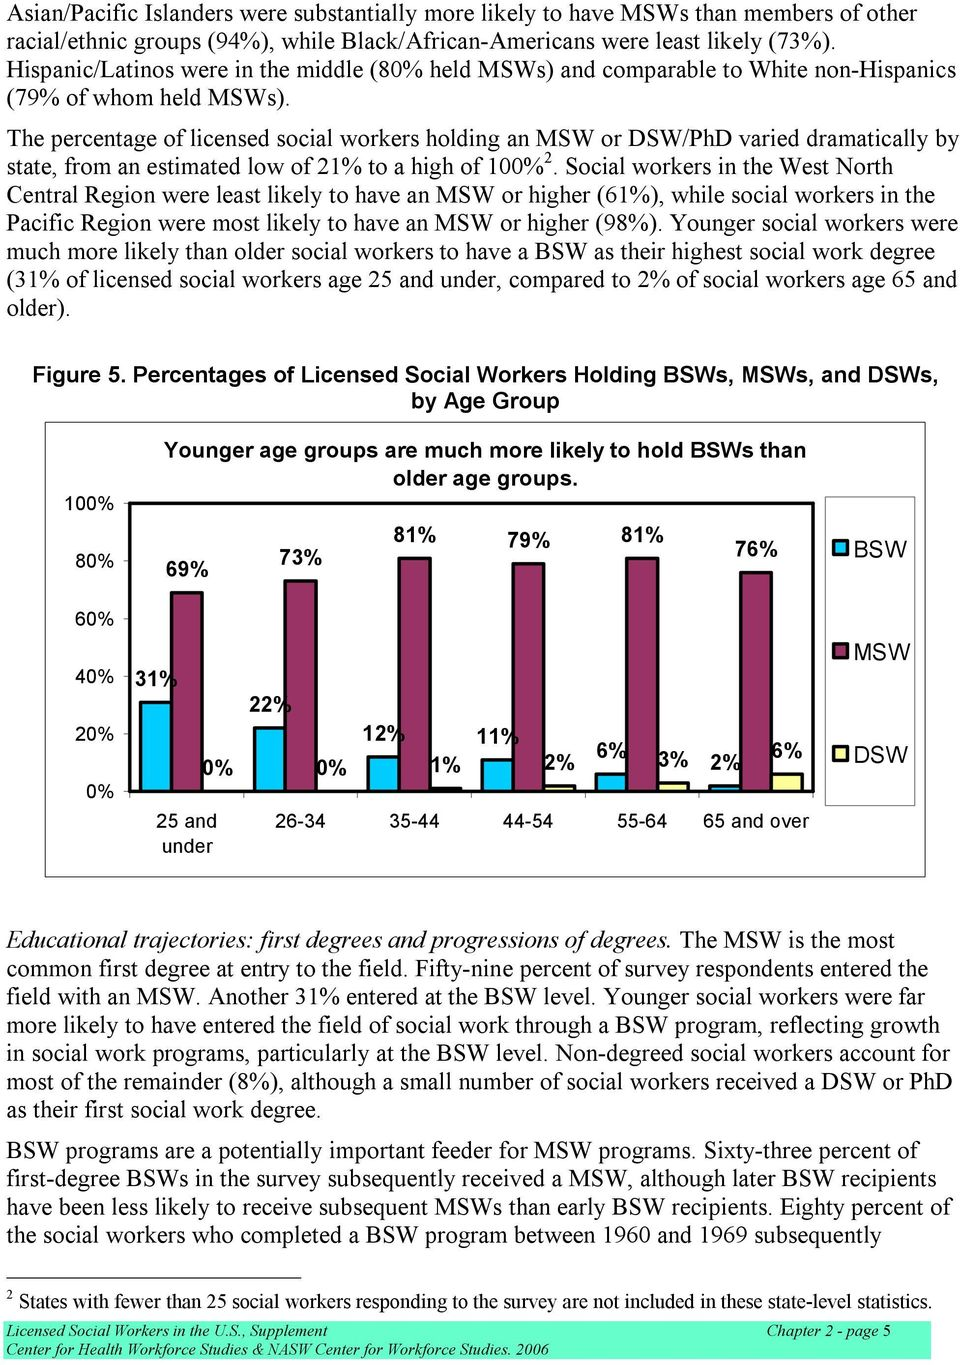 The percentage of licensed social workers holding an MSW or DSW/PhD varied dramatically by state, from an estimated low of 21% to a high of 100% 2.